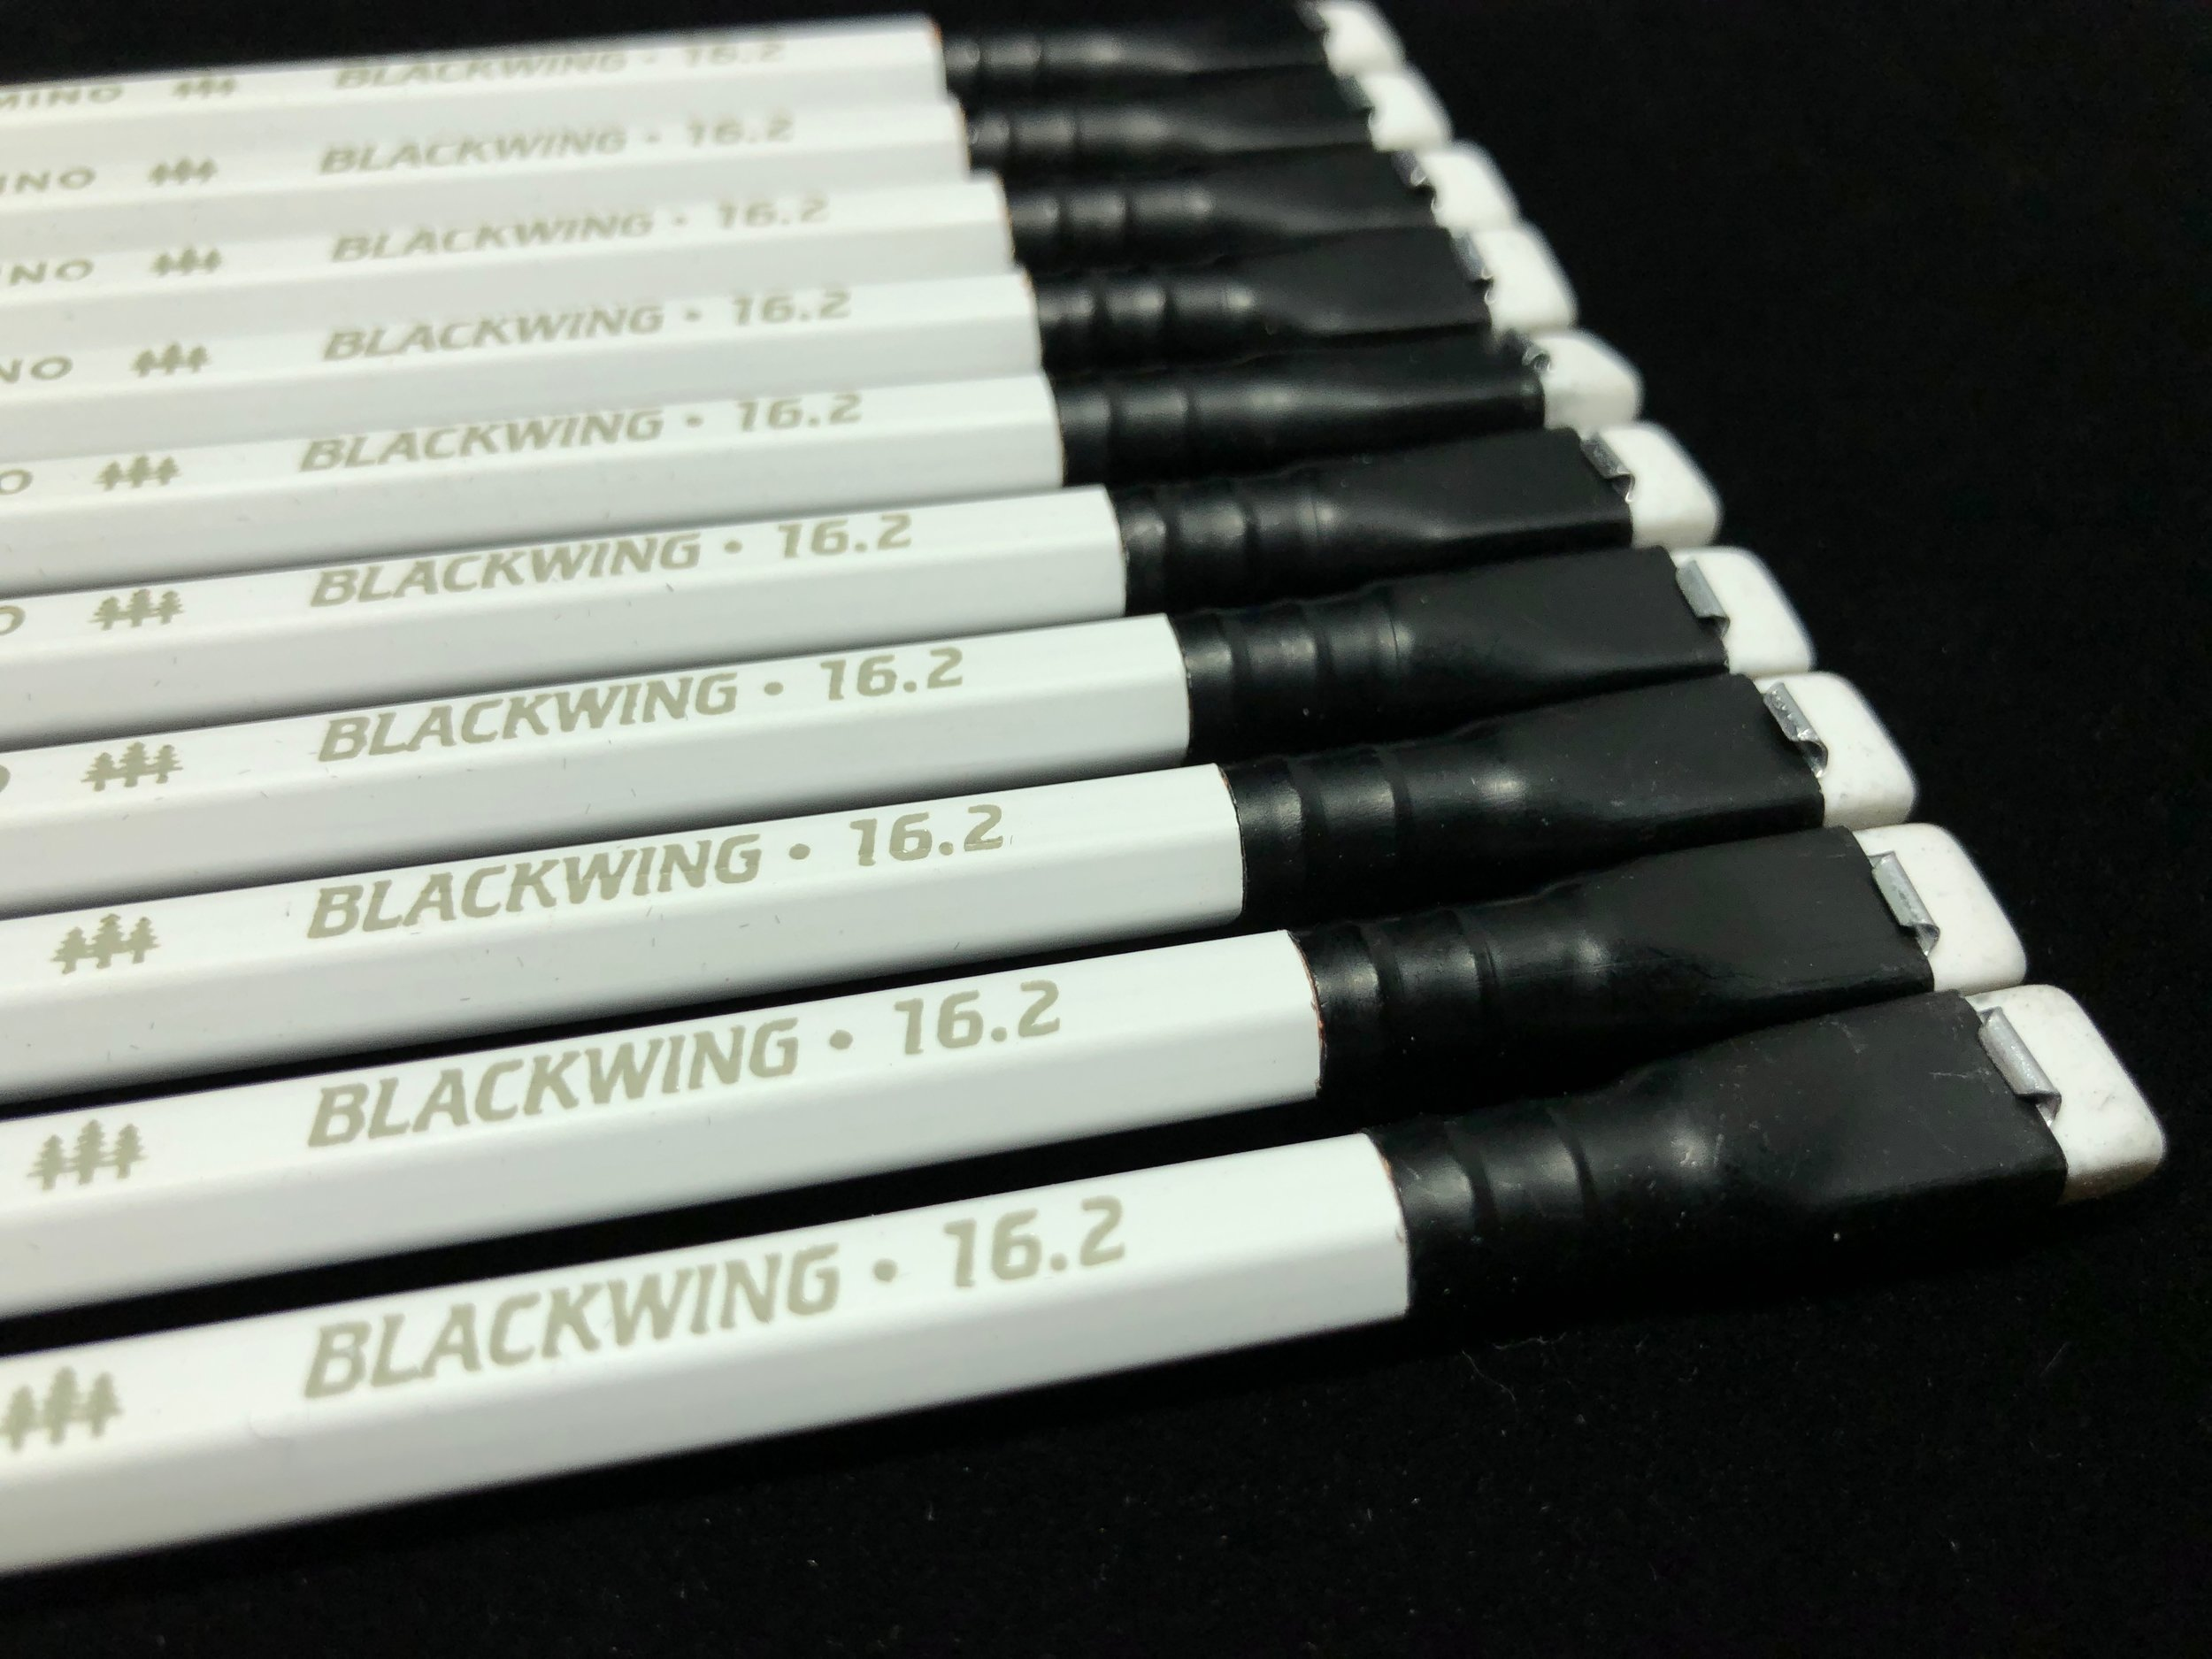 blackwing-16_2-pencil-13.jpg